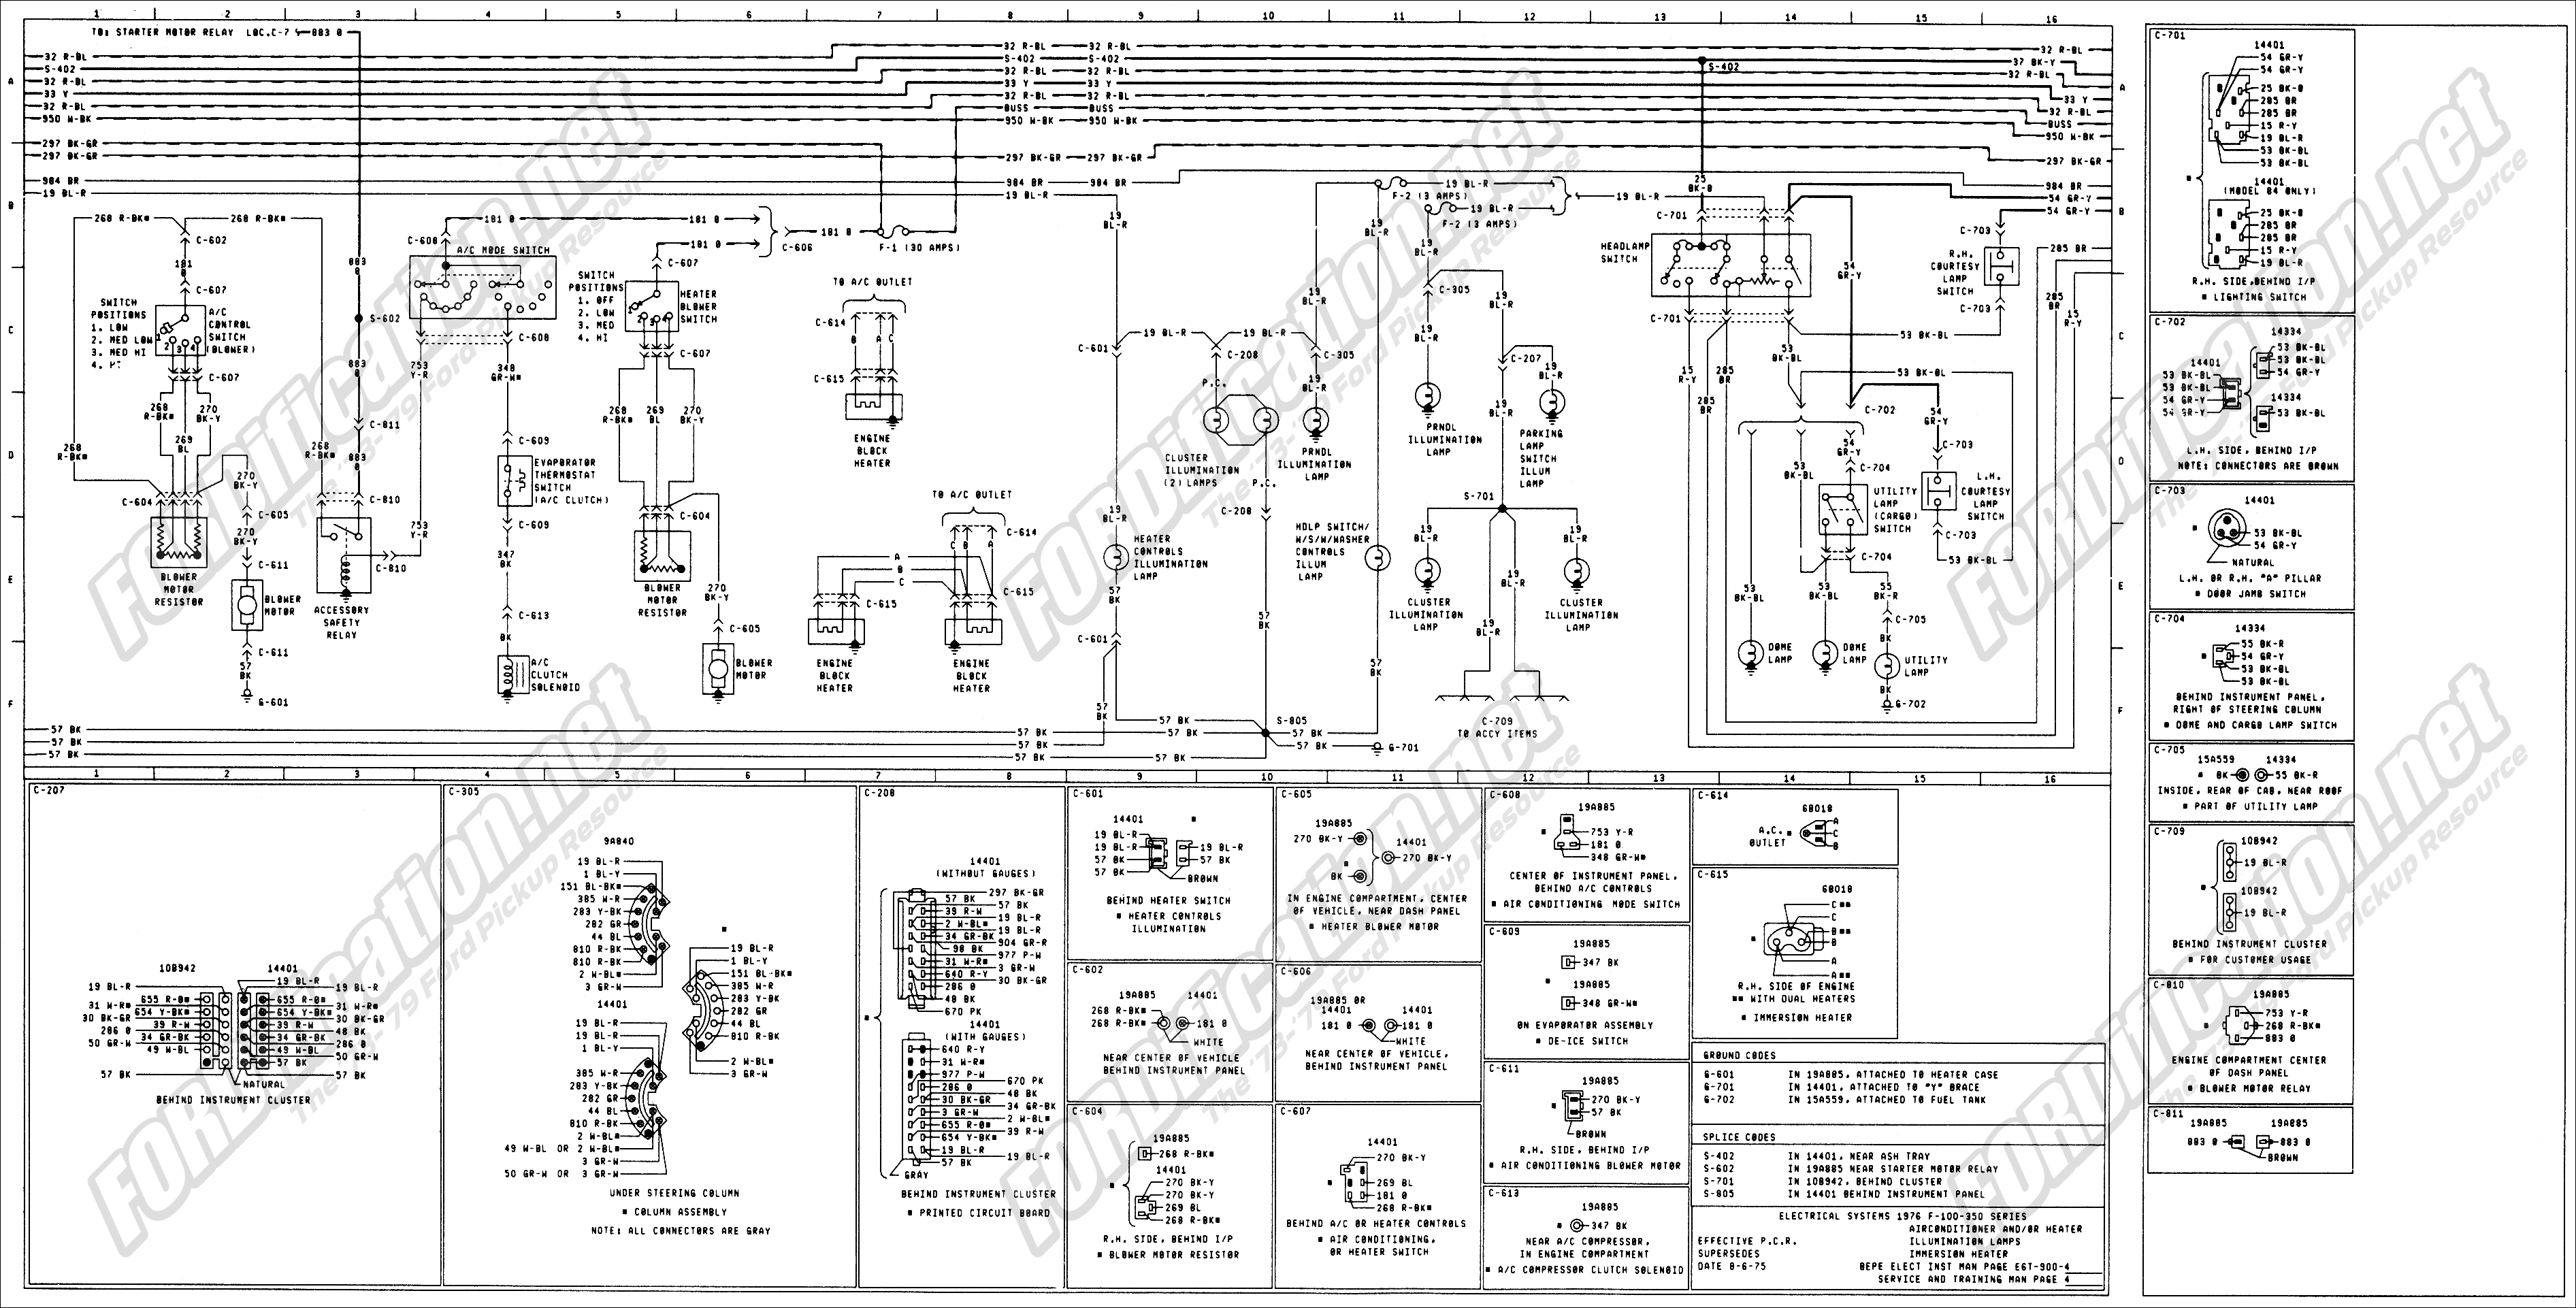 ttn_962] 1979 f100 wiring diagram | wiring diagram ttn_962 |  structure-approve.centrostudimad.it  centrostudimad.it